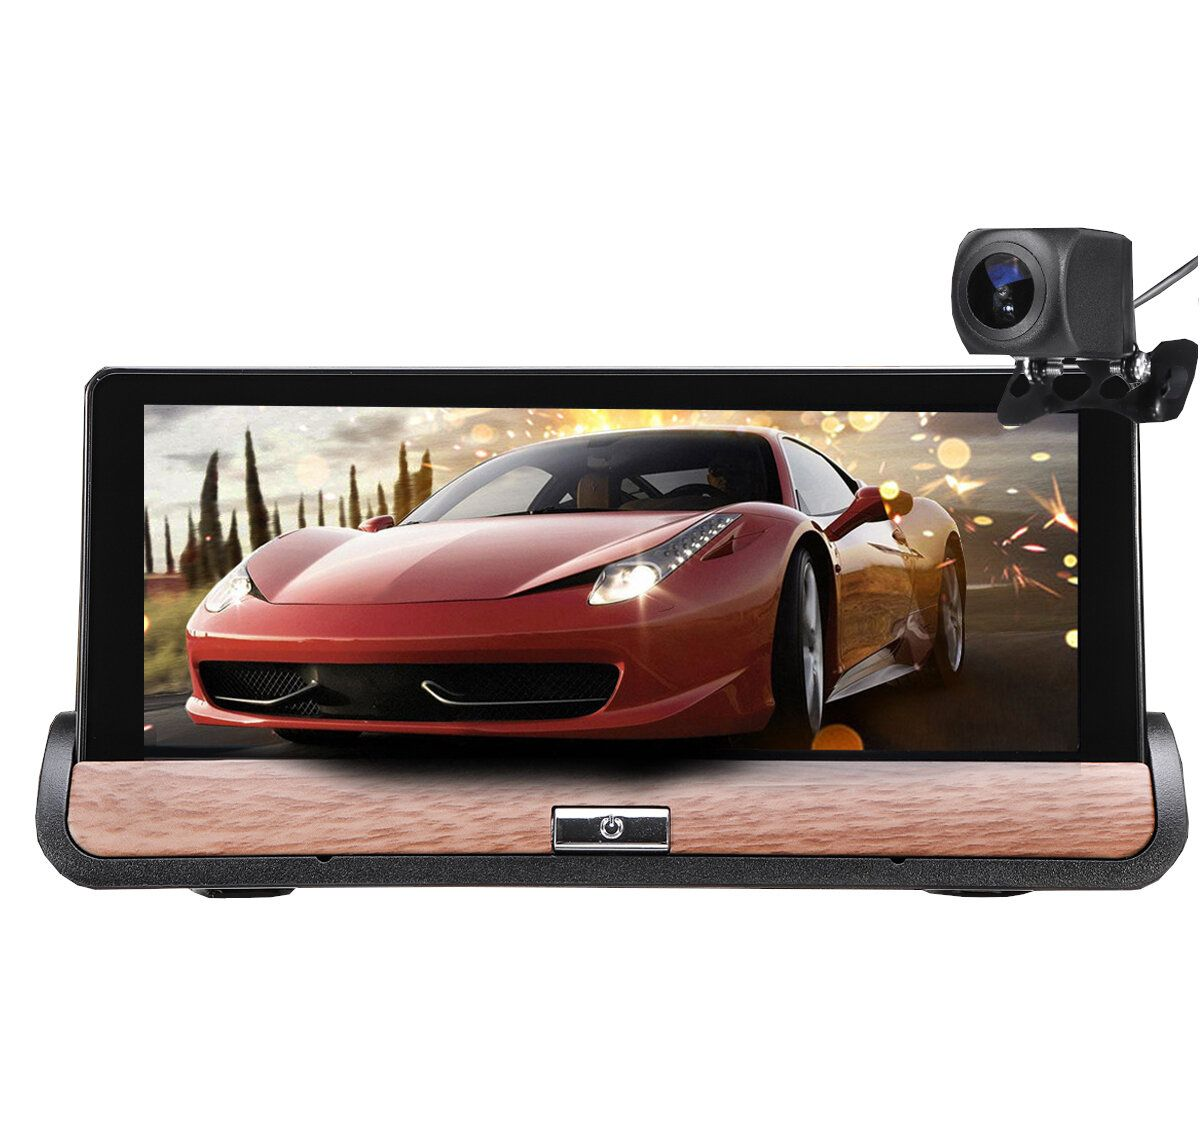 JHV US$121.53 7 Inch for Android 5.0 HD Car DVR GPS Dual Lens Navigation Rear View Dash Camera Recorder Touch Screen FM 3G + Wifi